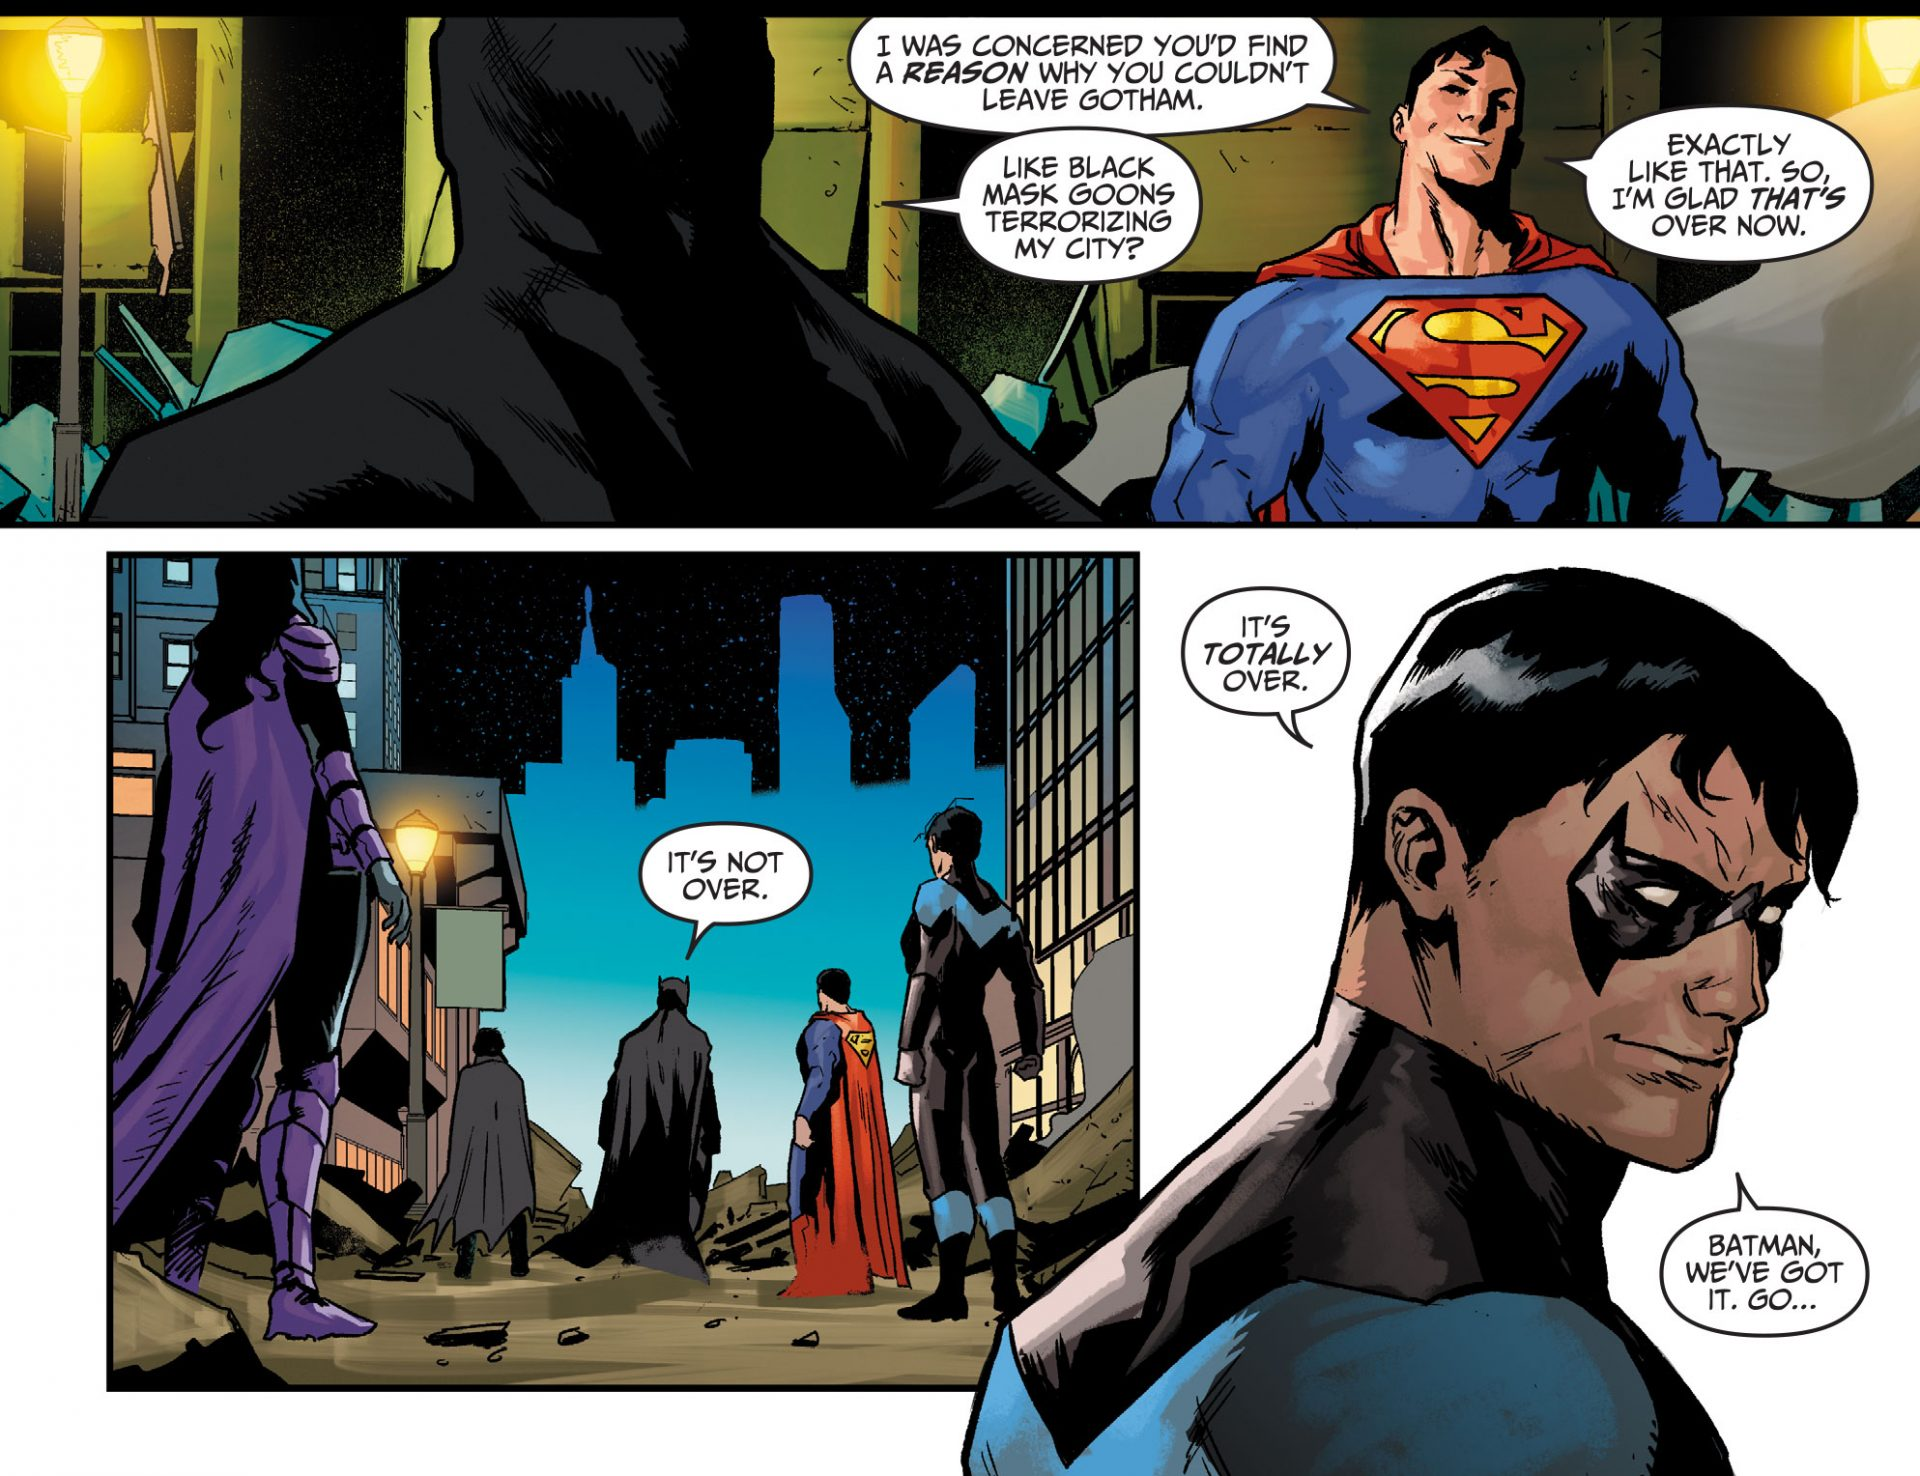 Injustice: Year Zero chapter 1 preview